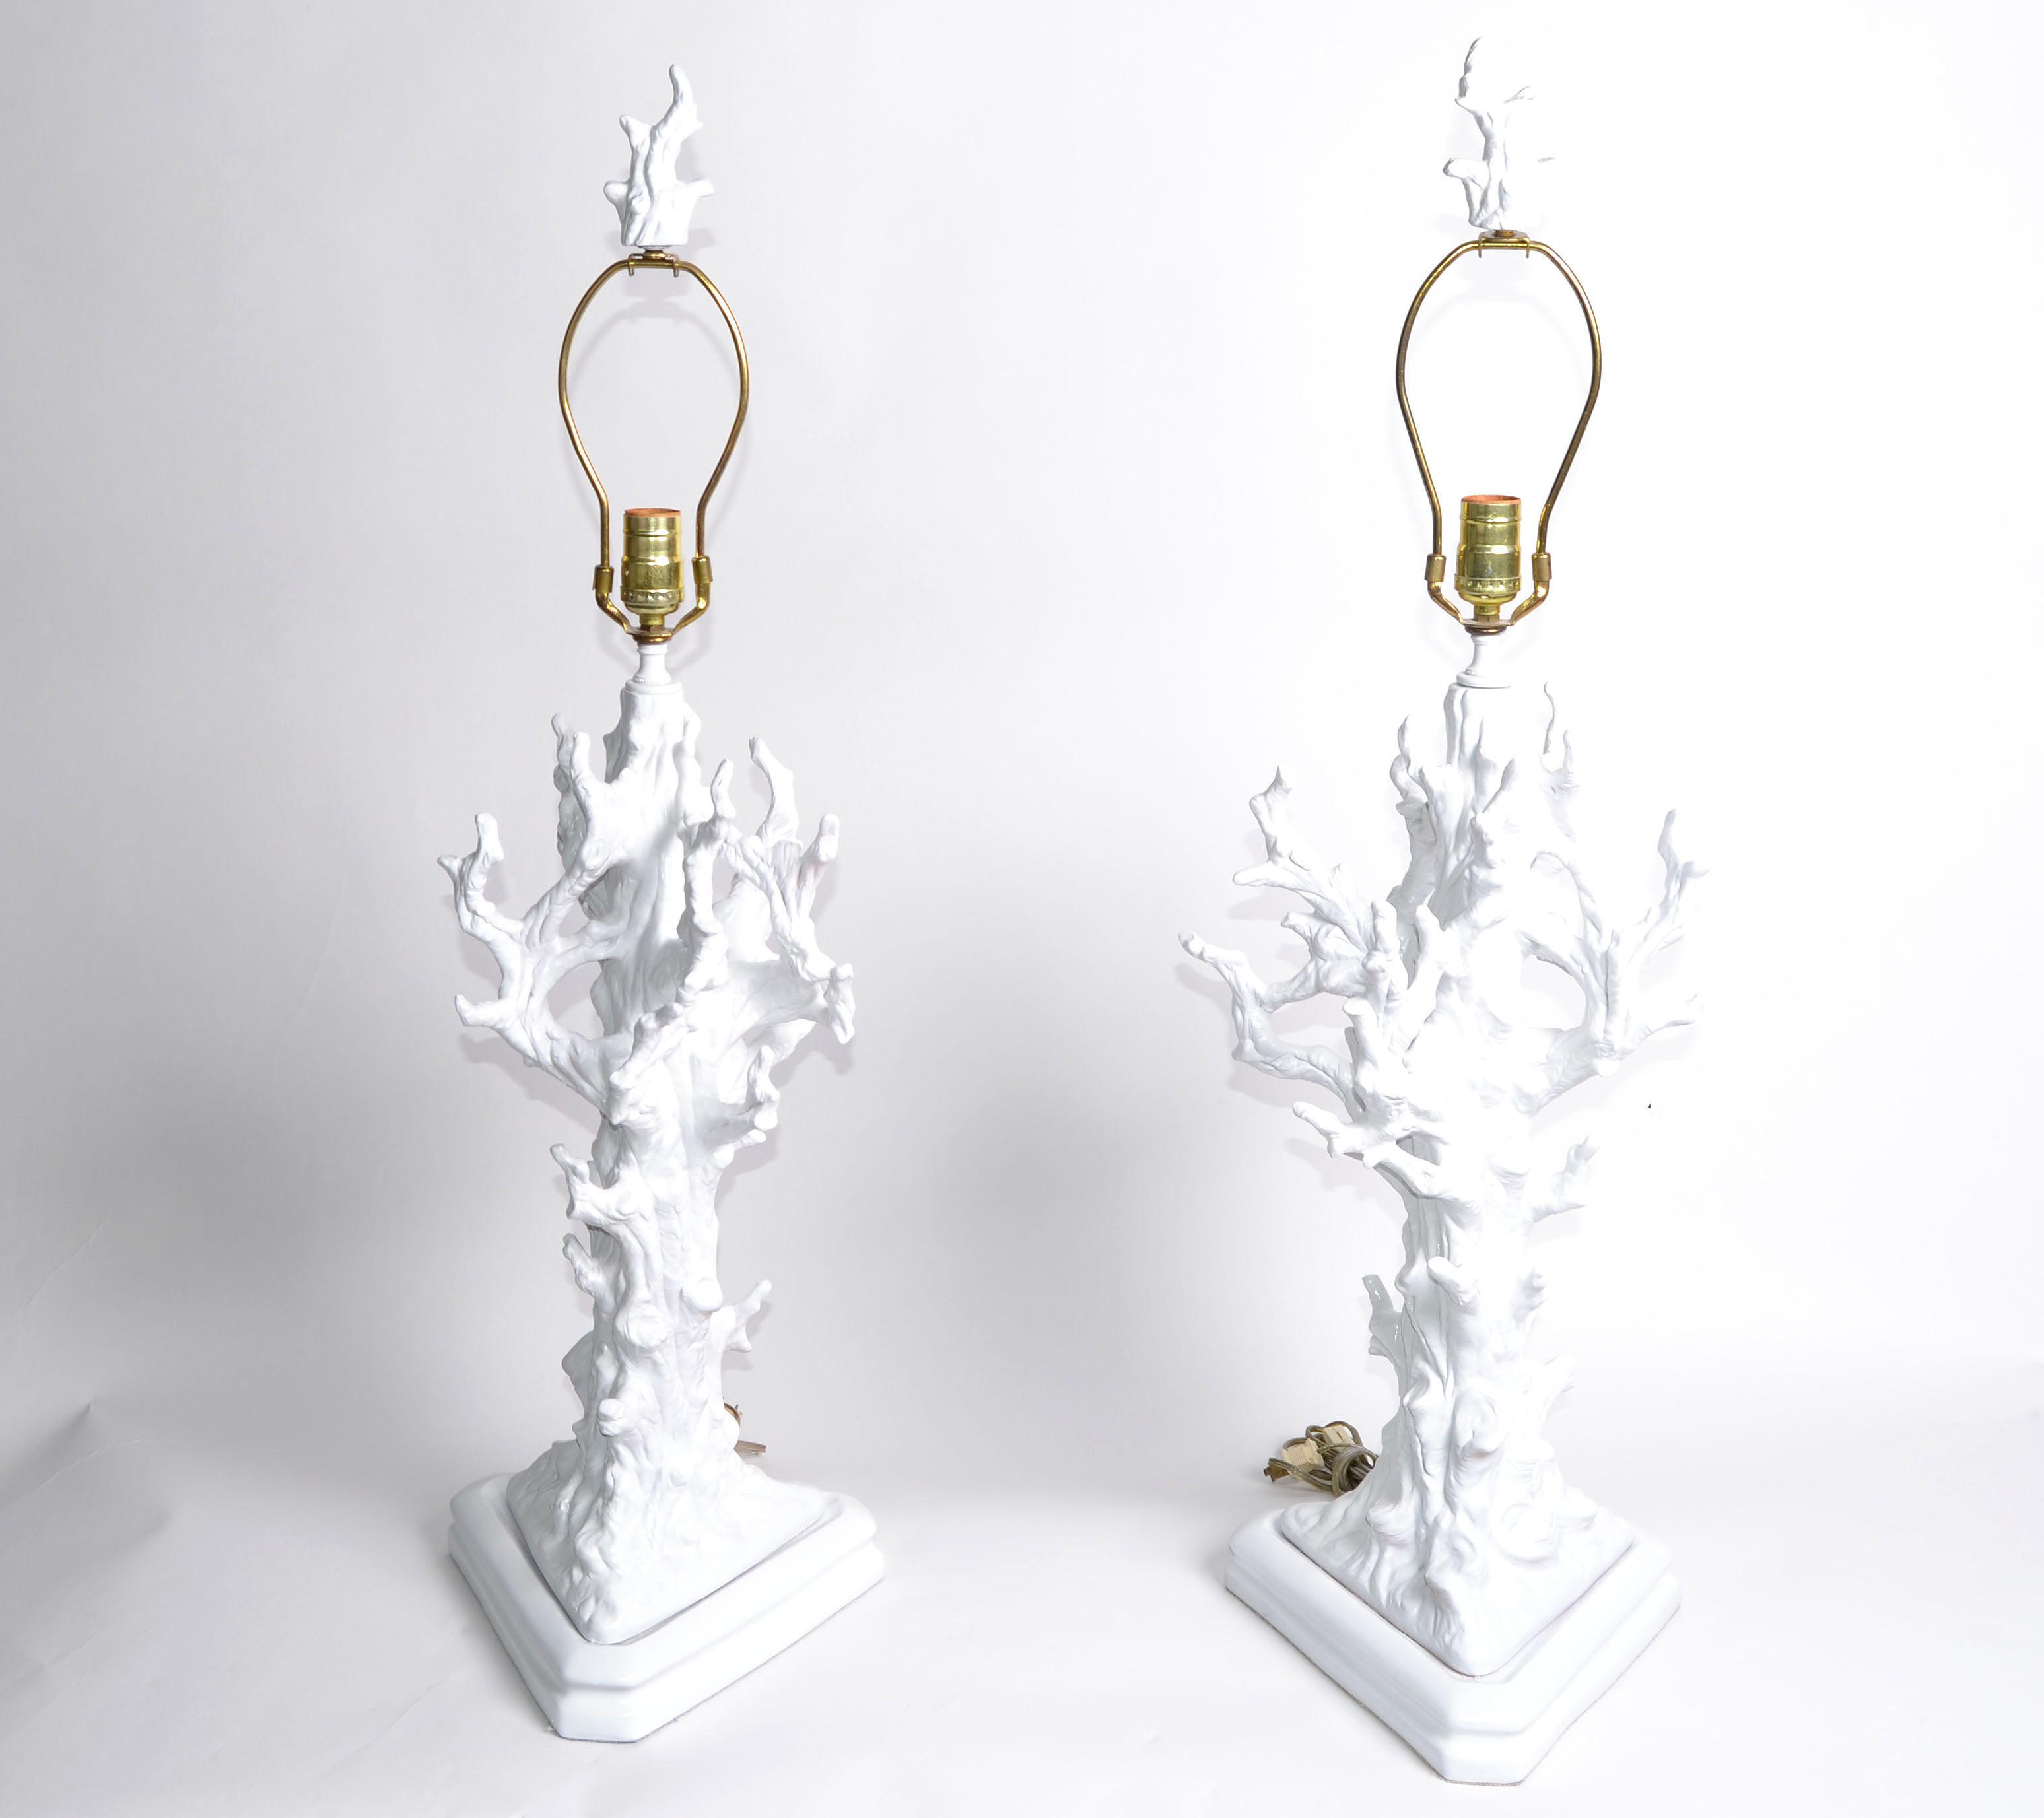 White Porcelain Tree Branches Table Lamps With Matching Finials. In Perfect  Working Condition And Each